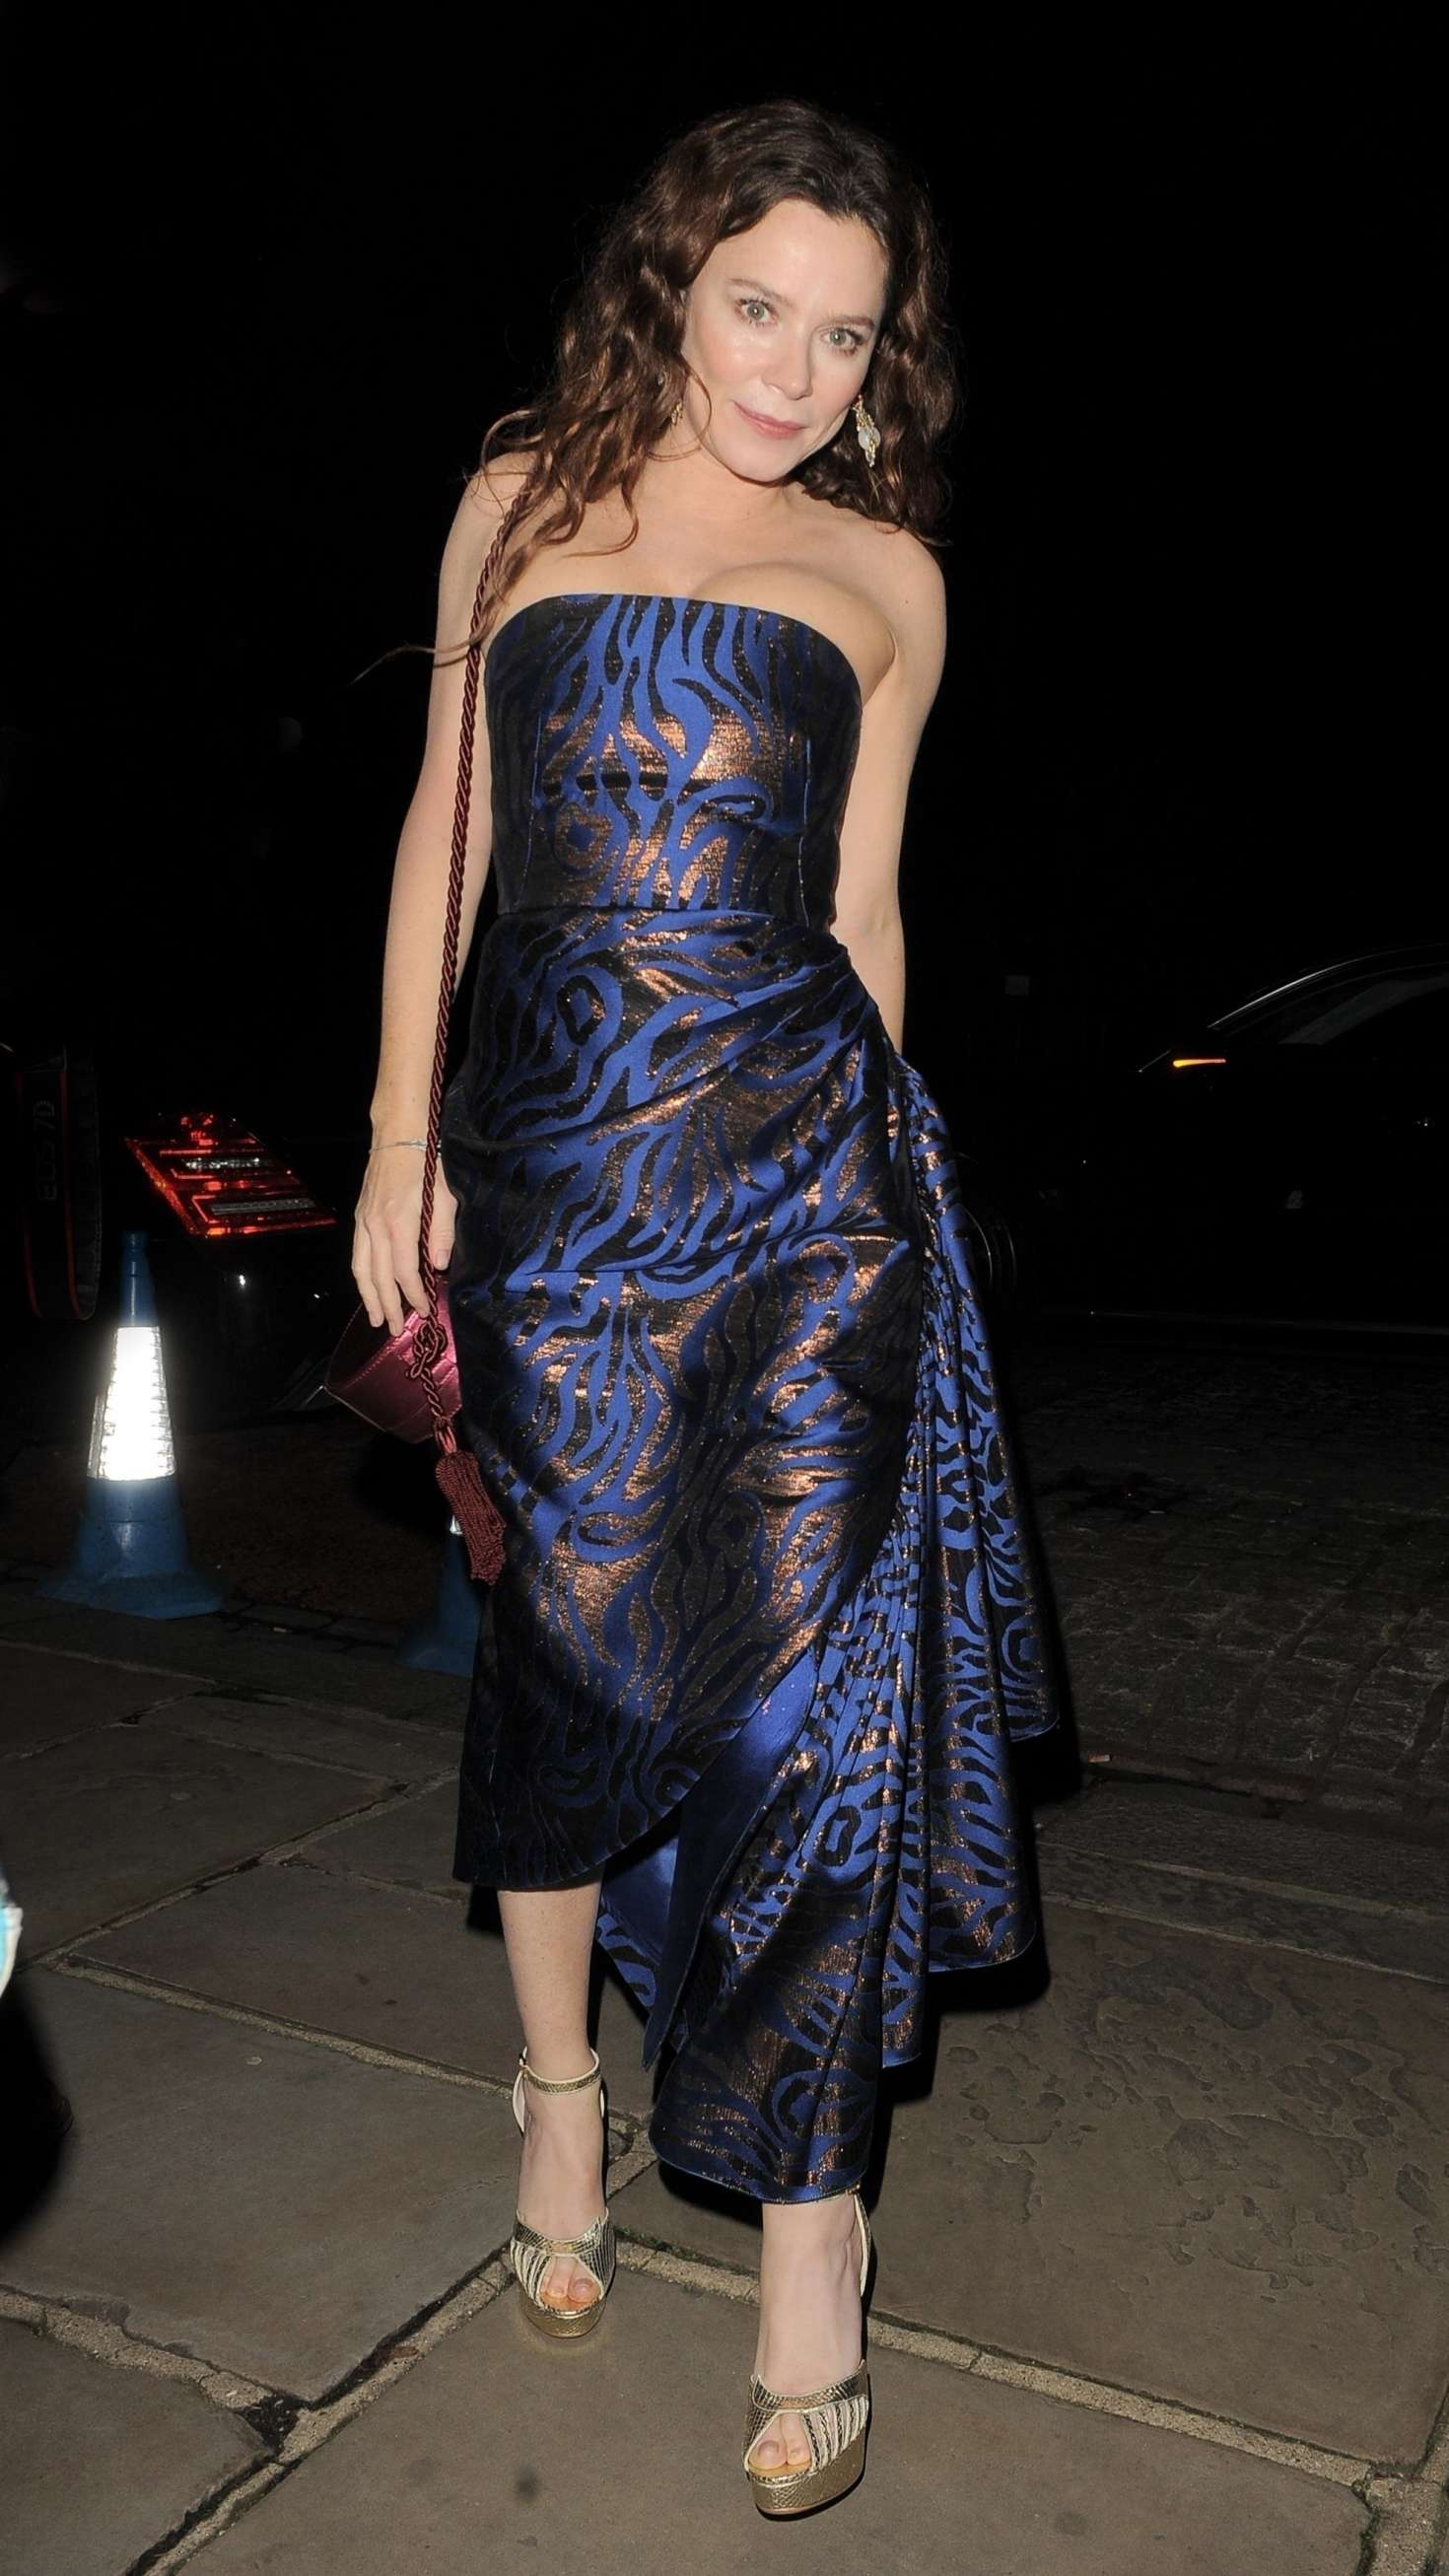 Anna Friel - Attends Evgeny Lebedev's Christmas Party in London